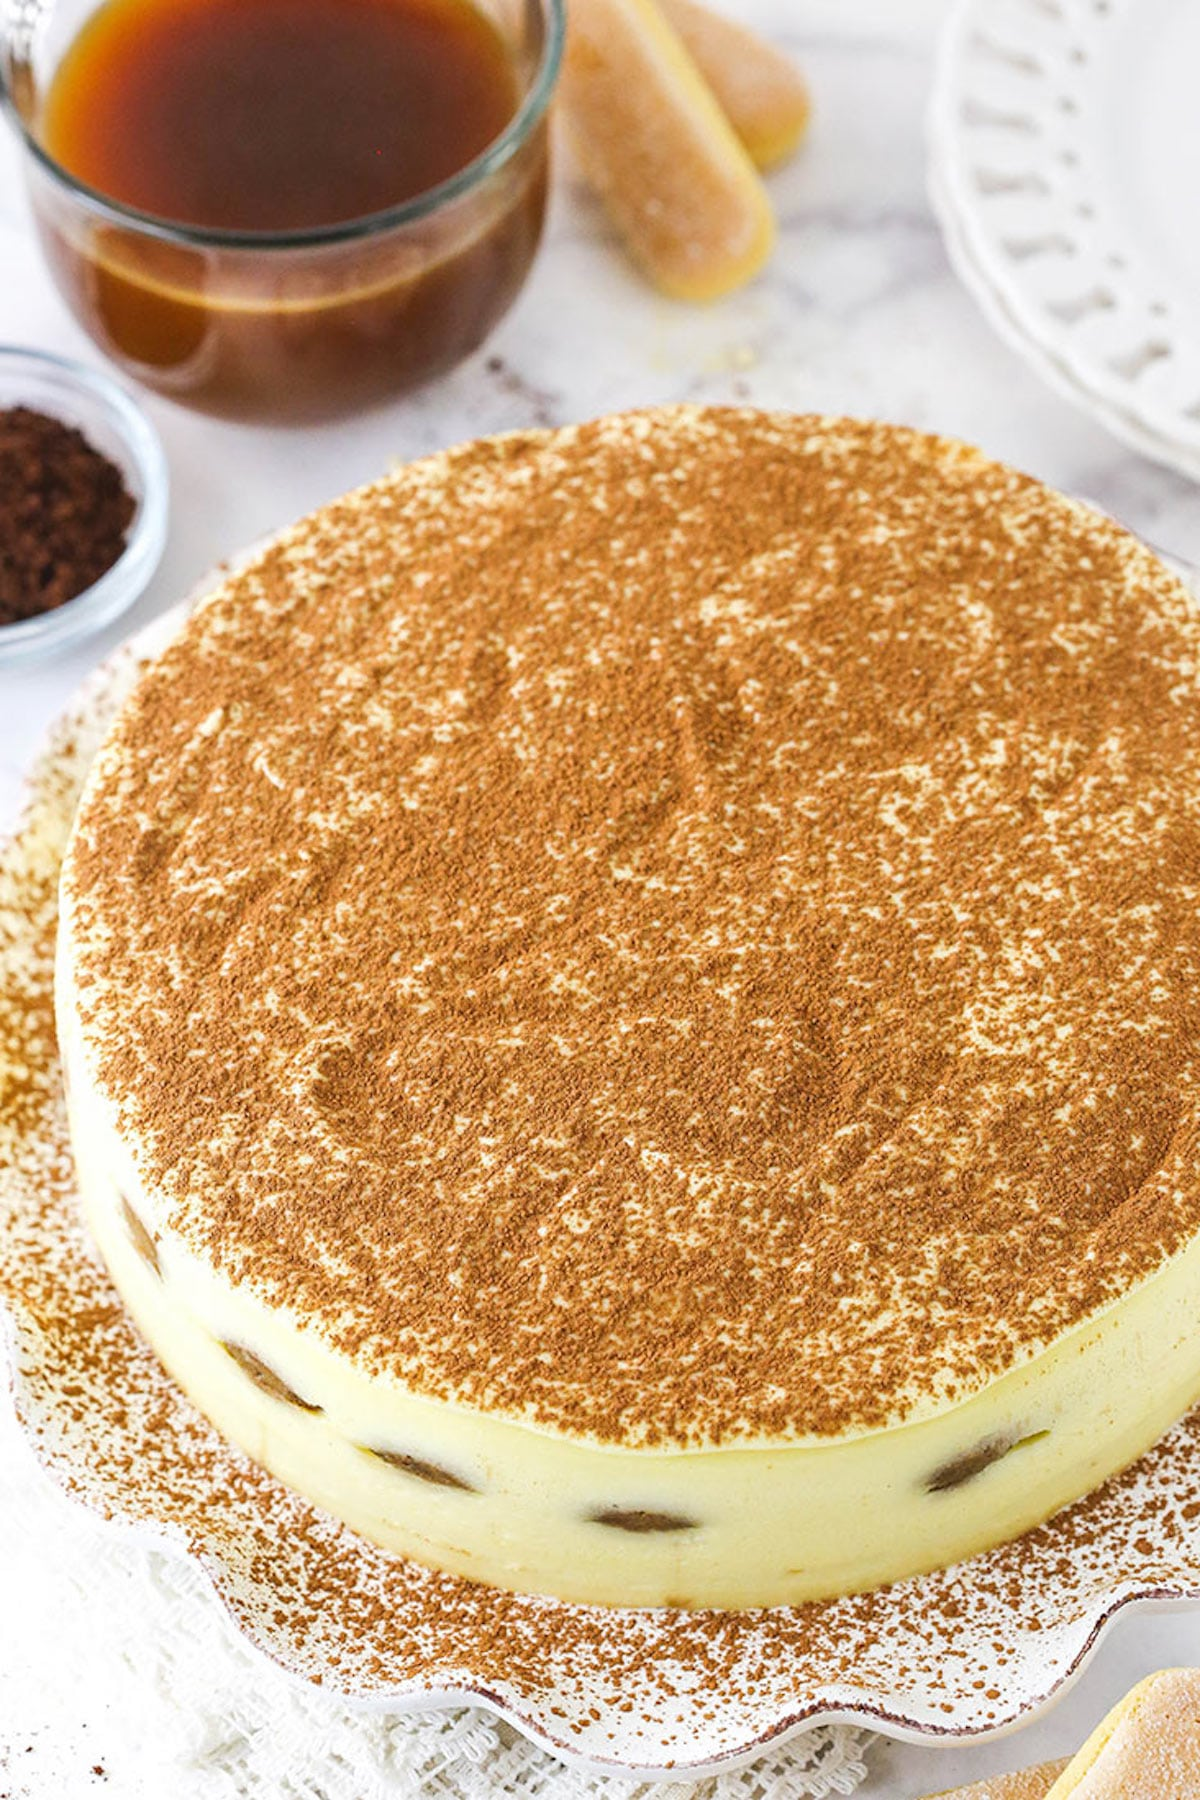 A Whole Tiramisu Cake on Top of a Cake Platter with a Sprinkling of Cocoa Powder on Top